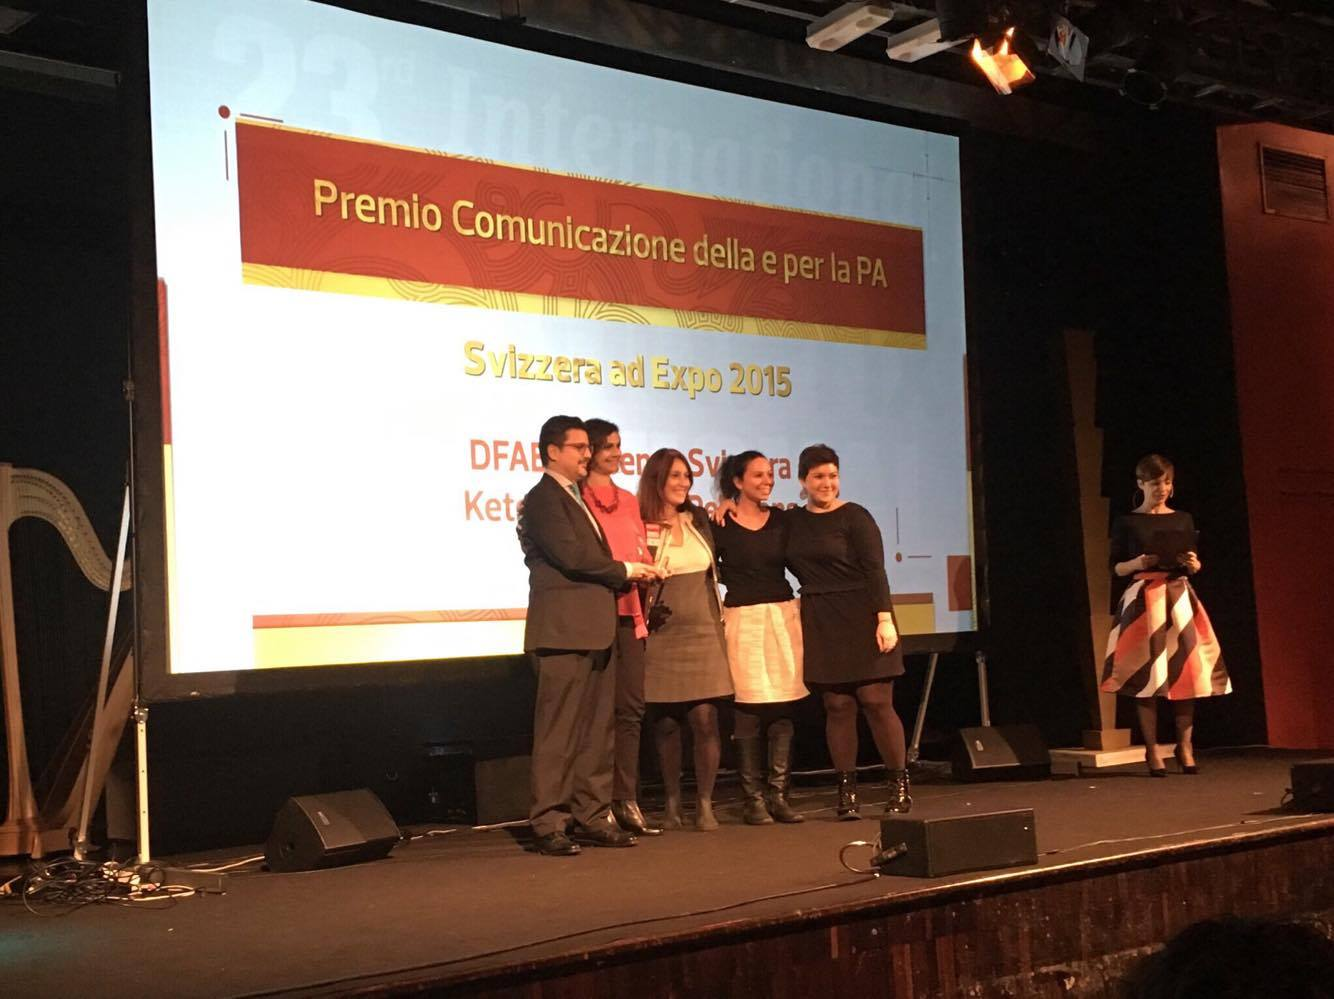 Ketchum Italy picked up four awards at the IMC Awards and Grand Prix Relational Strategies.